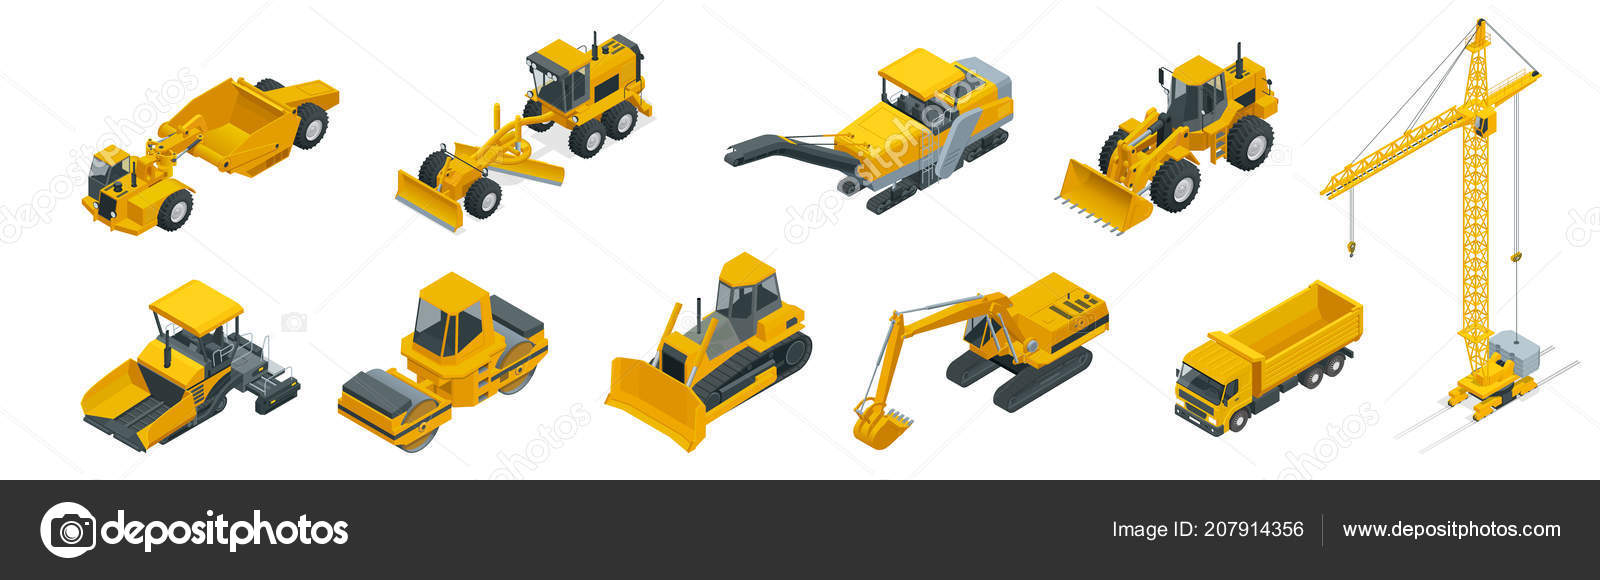 Isometric Icons Set Of Construction Equipment And Machinery With